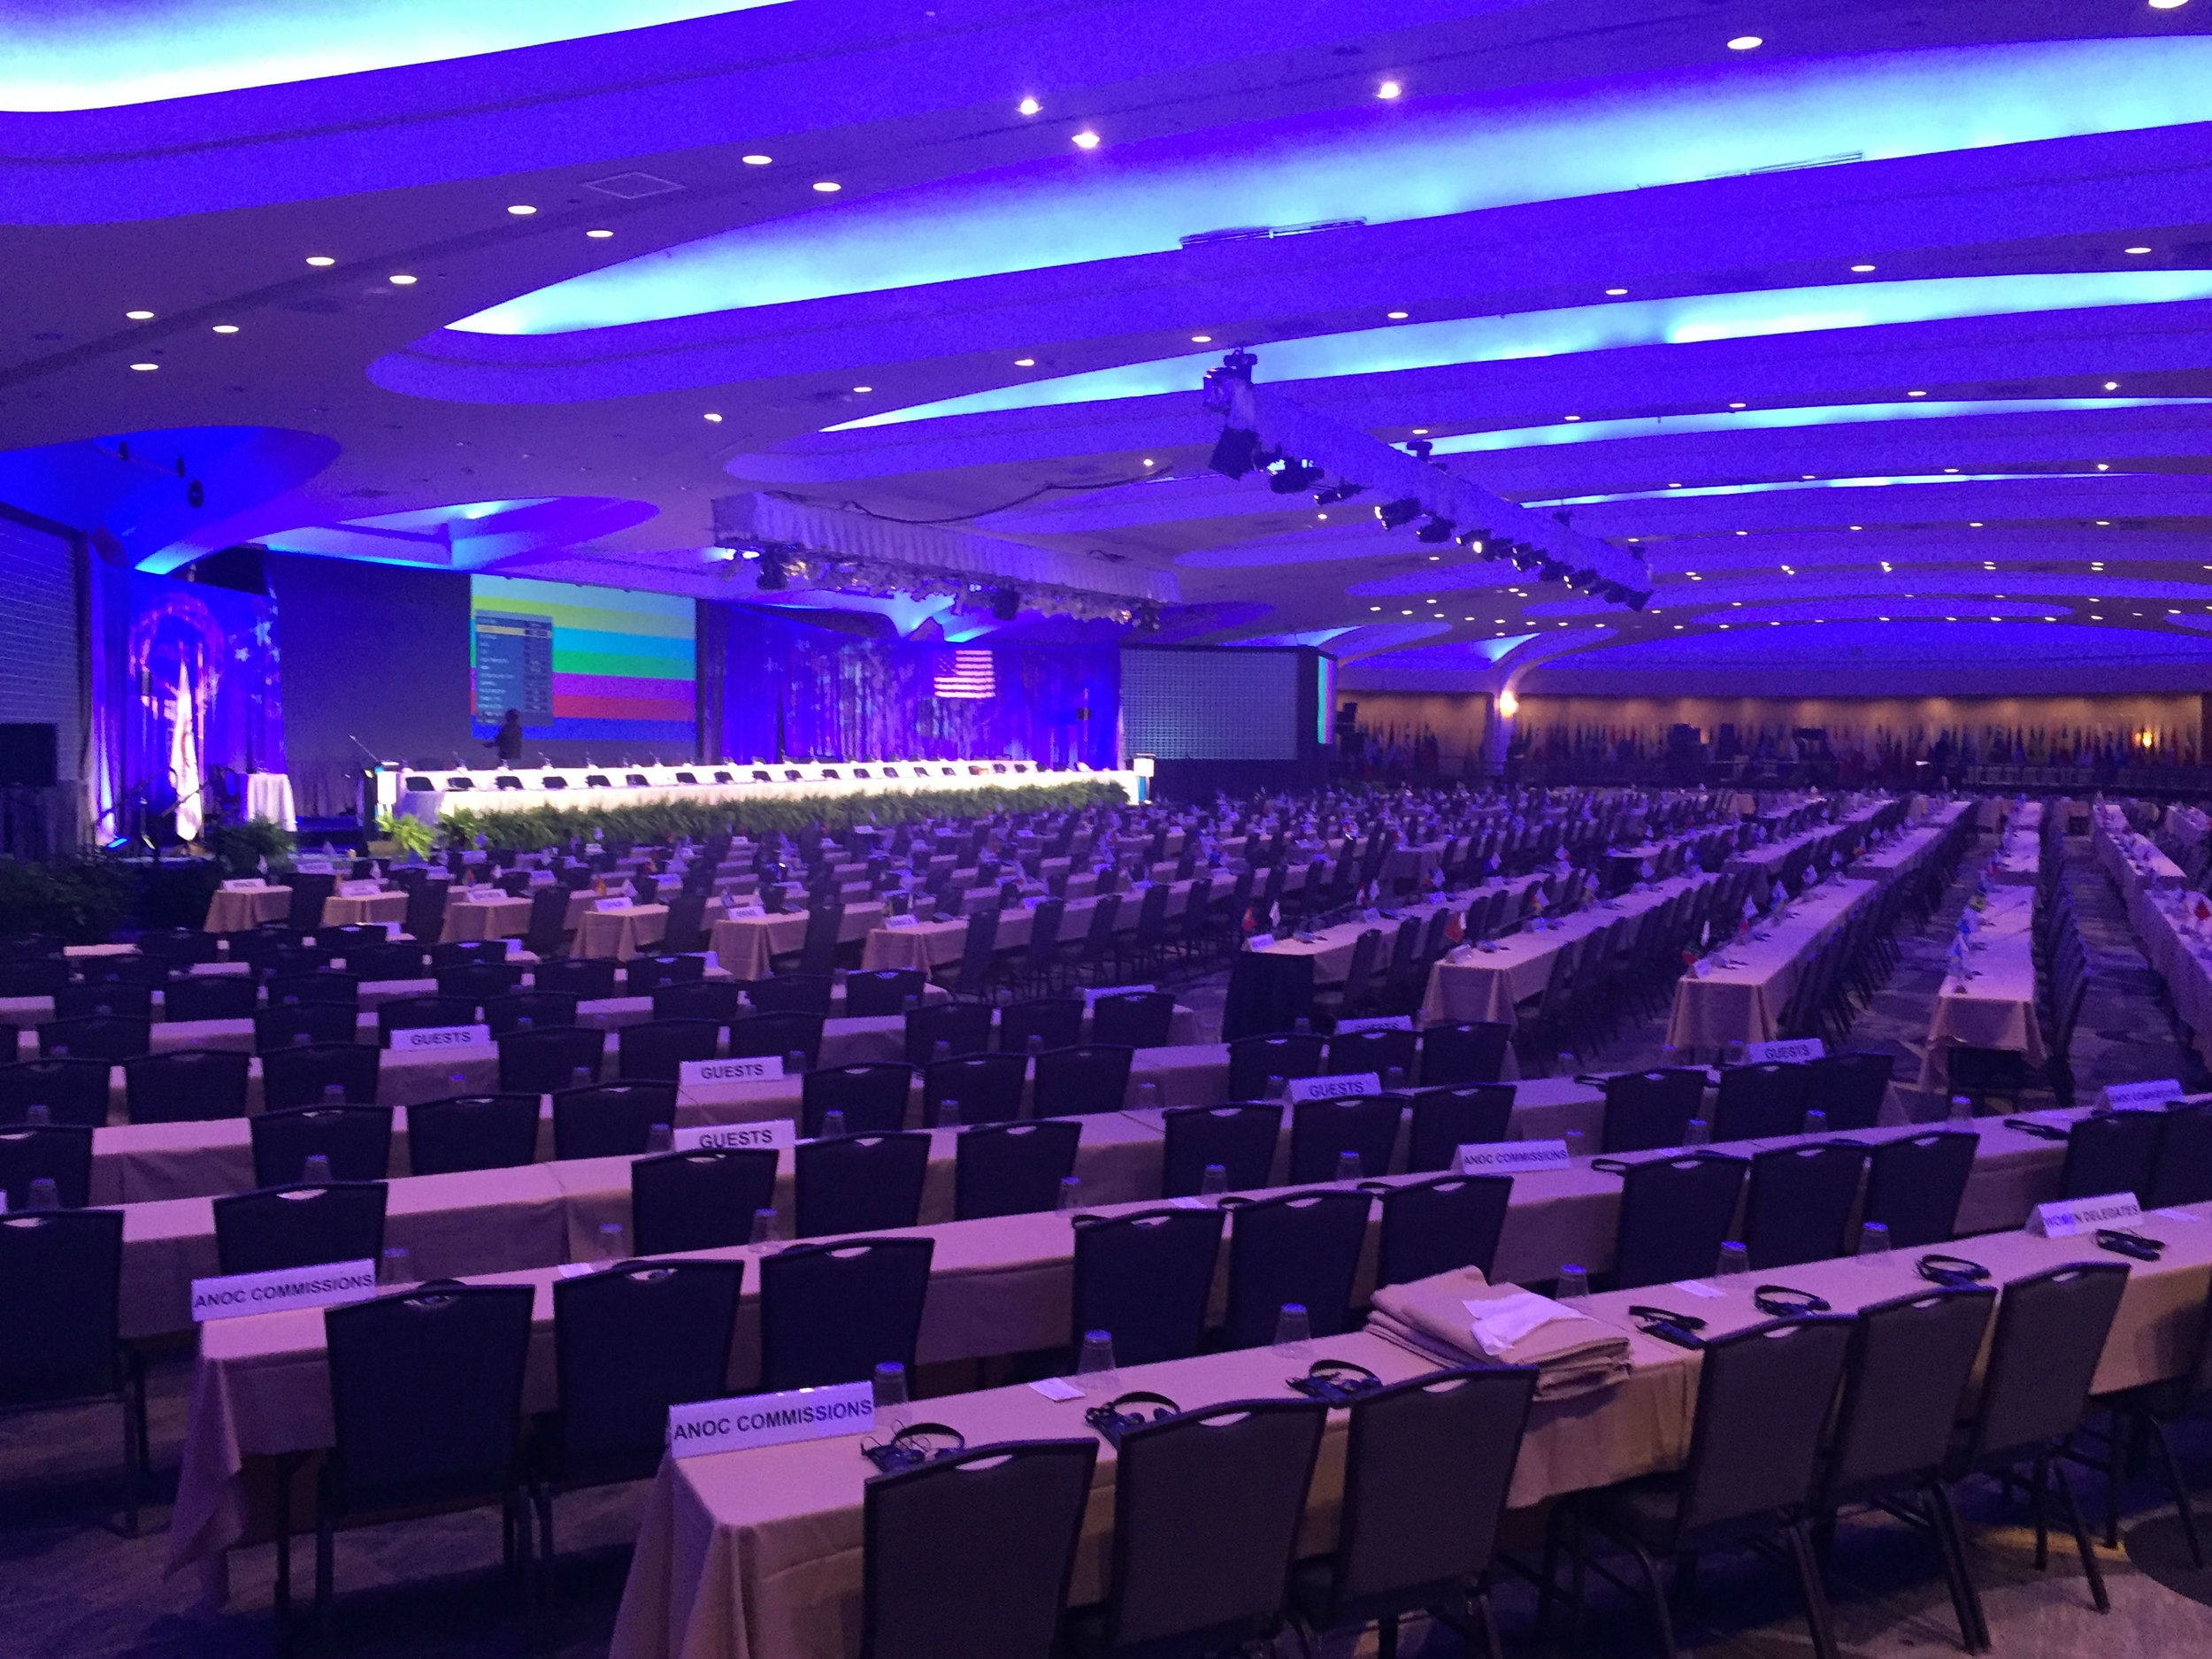 What We Do - We provide conference Interpreting services for world-wide events of all sizes, focusing on viable new technology solutions. We rent &sell equipment, and design custom installations.